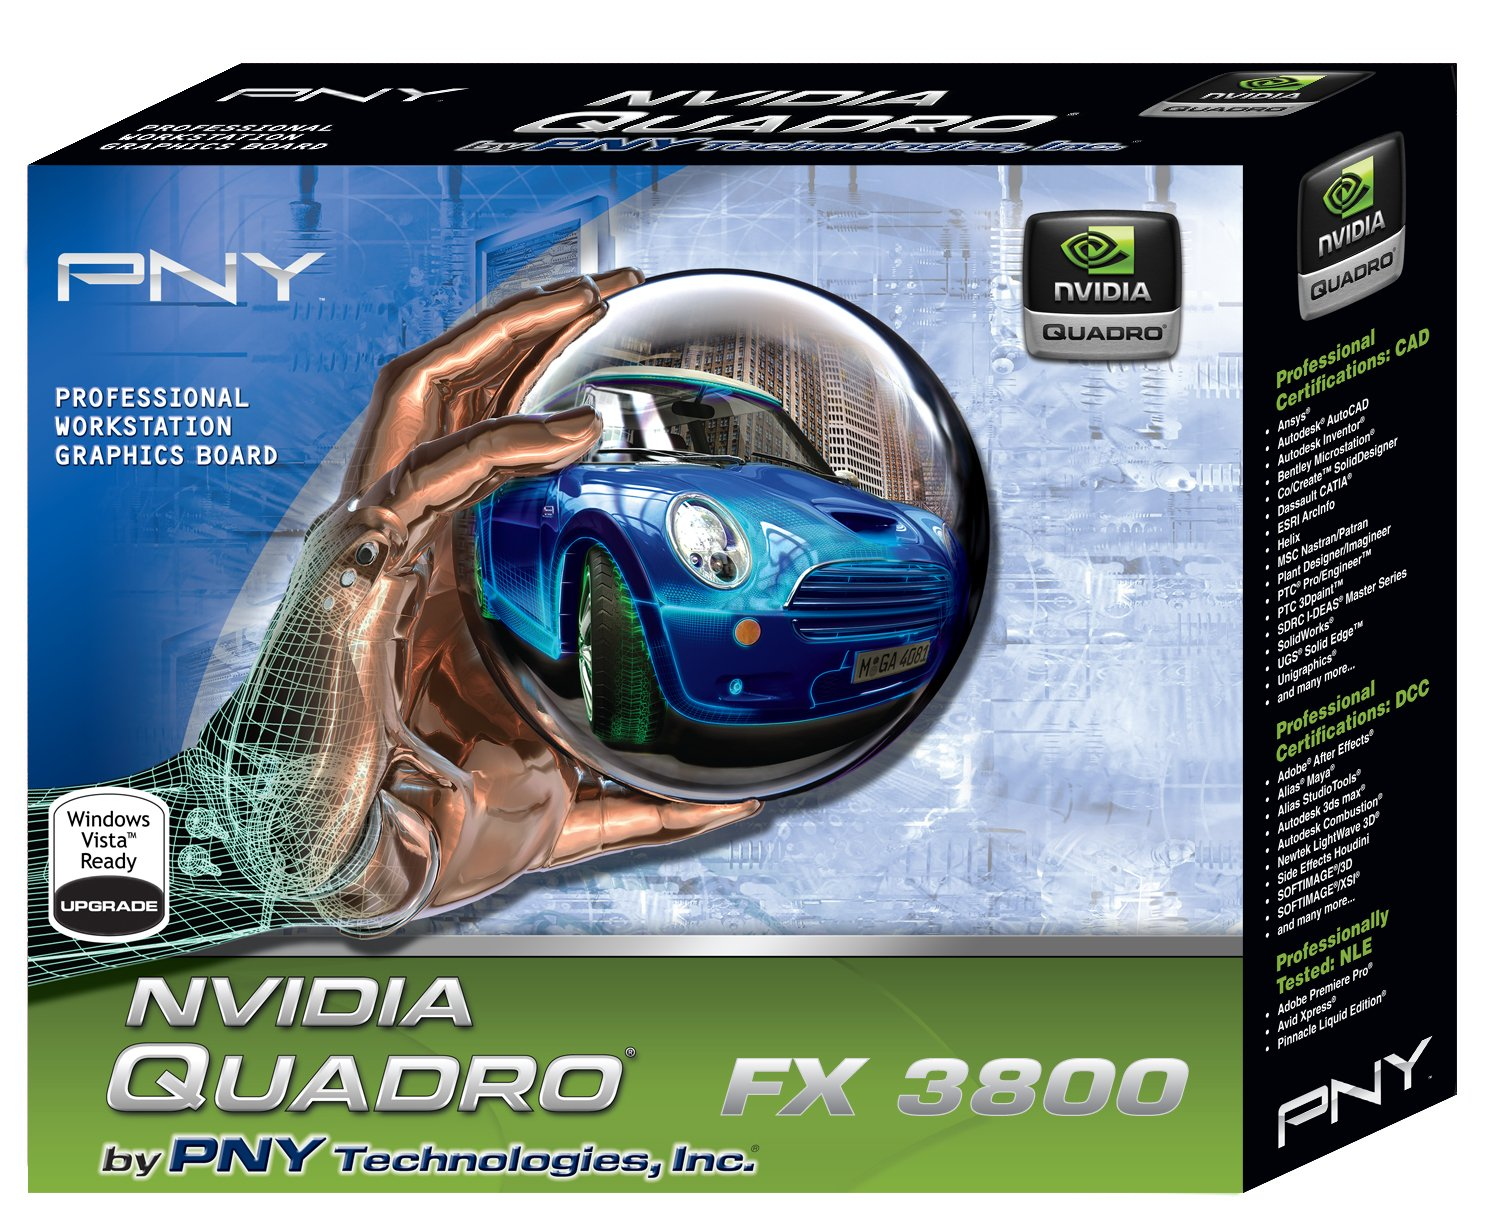 NVIDIA Quadro FX 3800 by PNY 1GB GDDR3 PCI Express Gen 2 x16 DVI-I DL Dual DisplayPort and Stereo OpenGL, DirectX, CUDA, and OpenCL Profesional ...